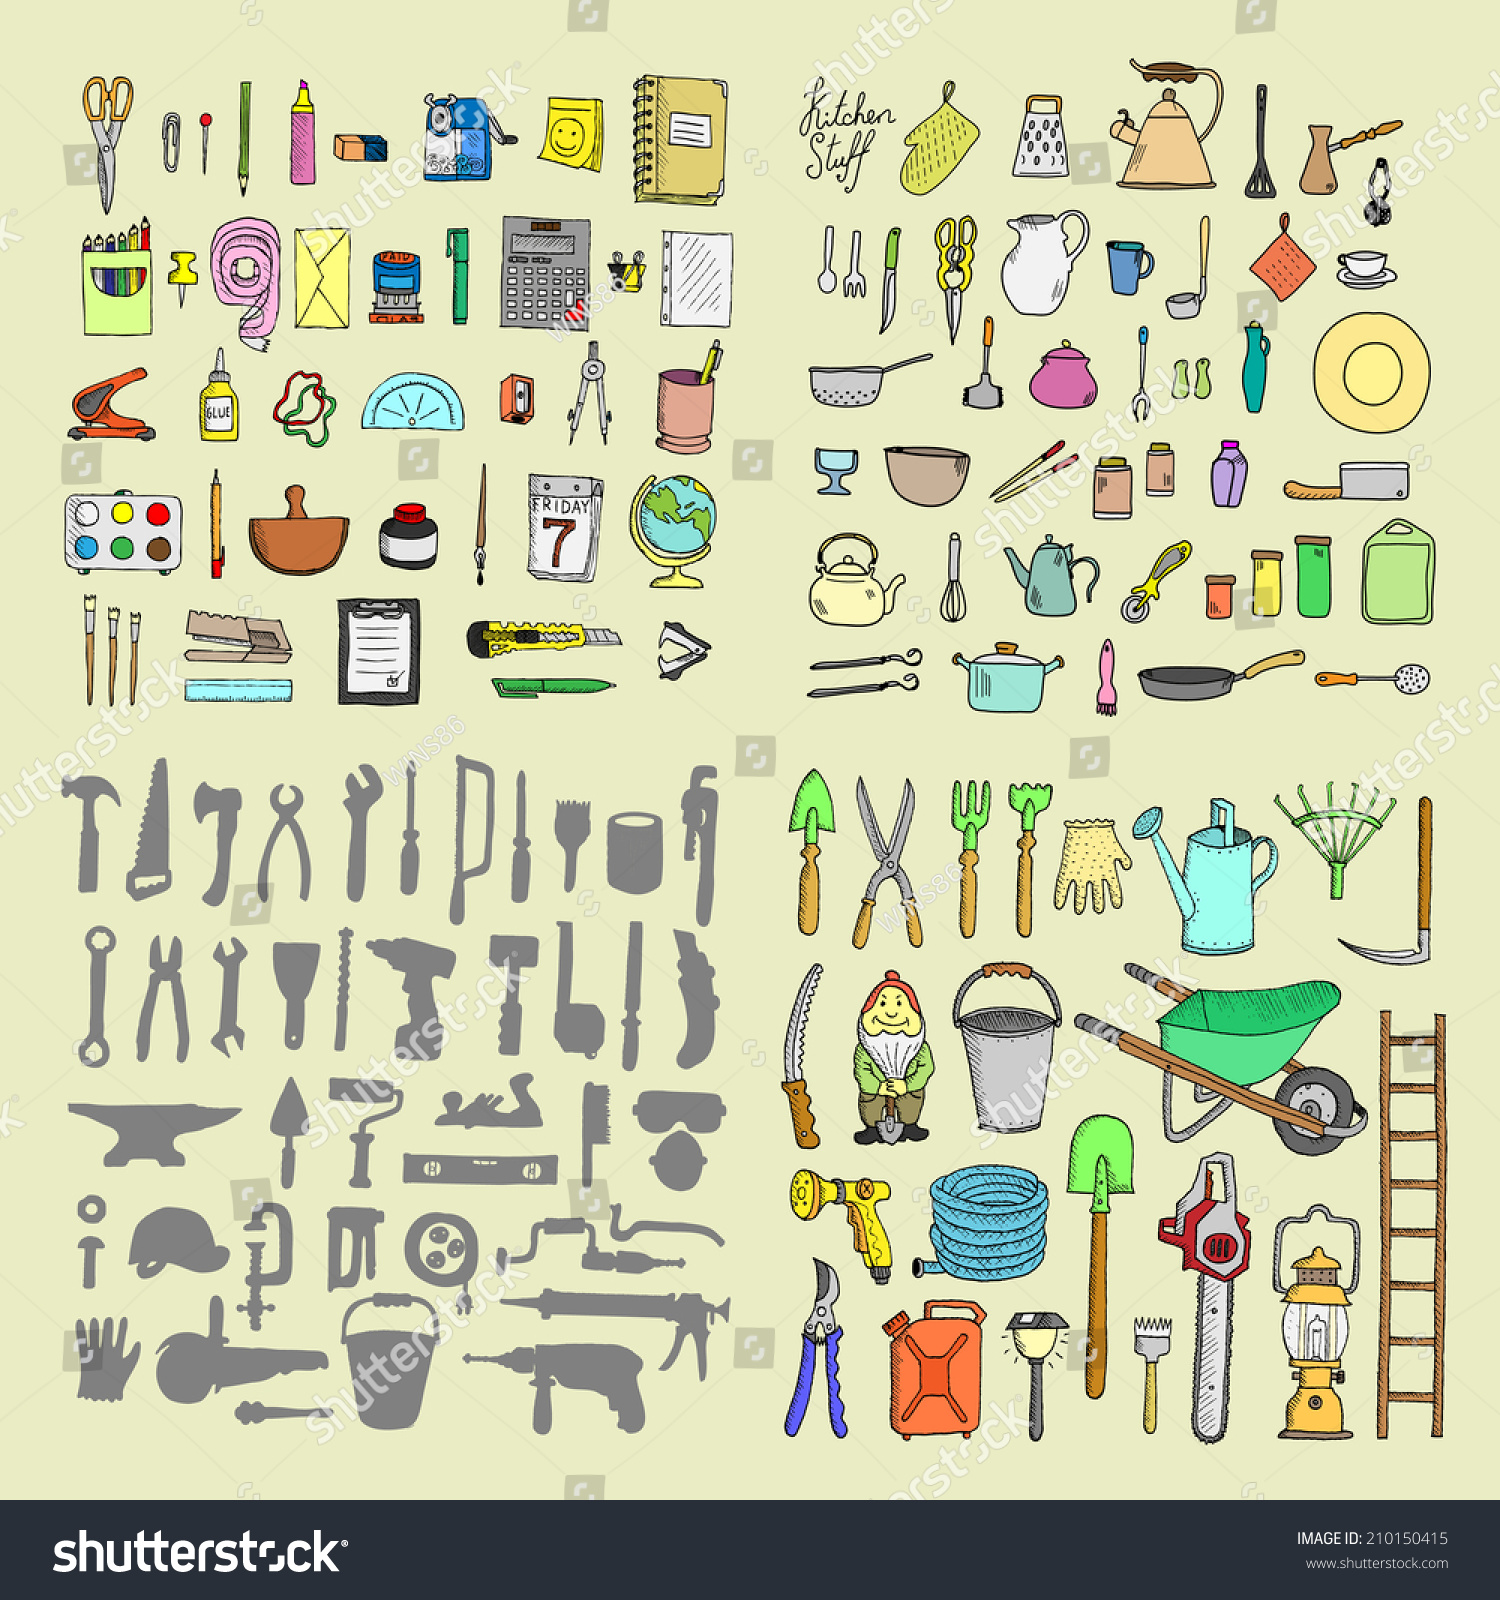 Household Objects - Collaboration